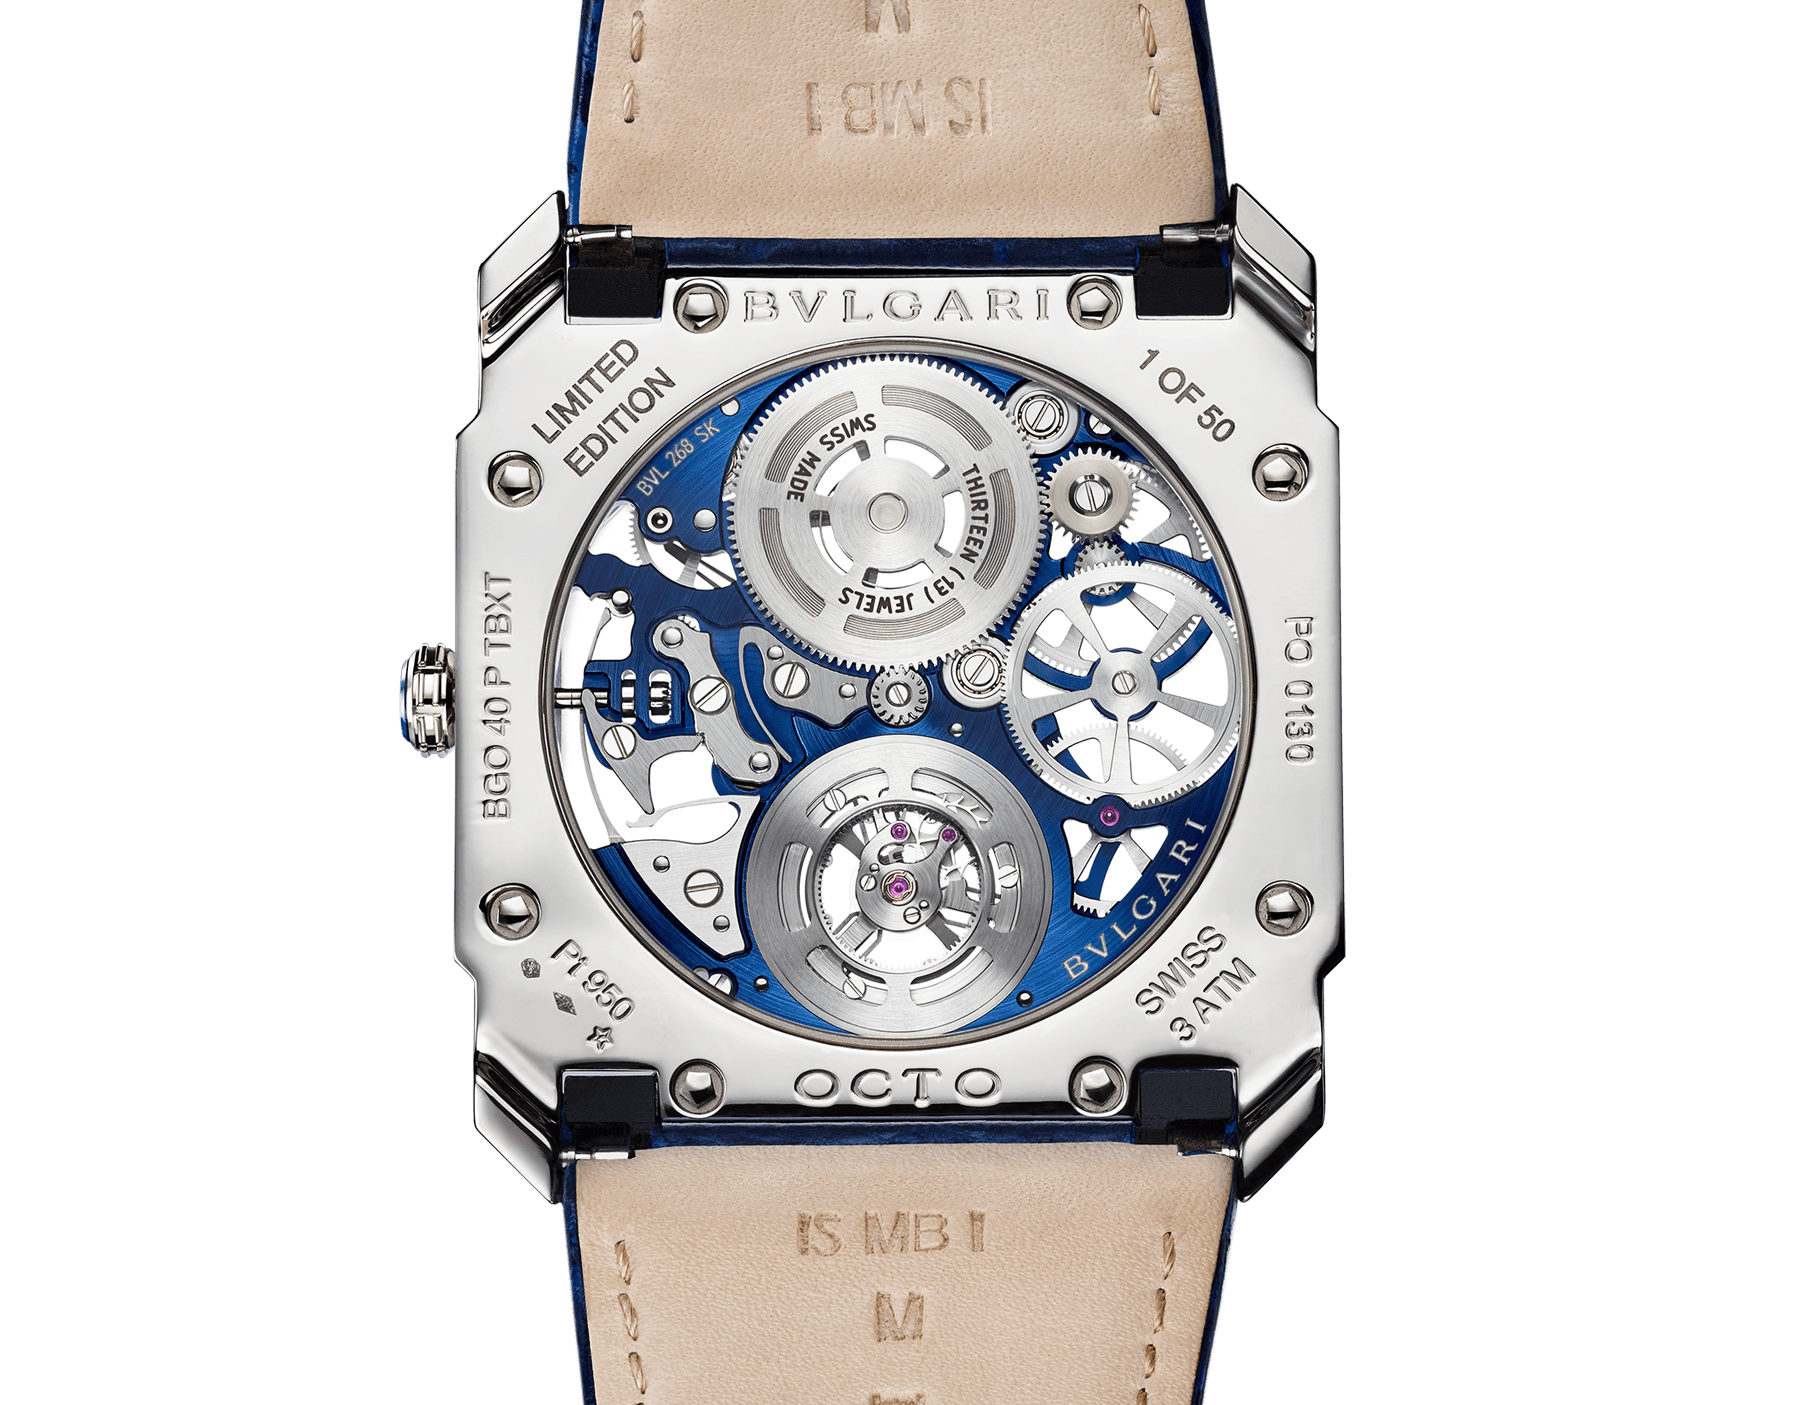 Octo Finissimo Tourbillon Skeleton watch with extra-thin mechanical movement with manual winding and flying tourbillon, 40 mm platinum case with transparent case back, platinum crown with blue ceramic insert, blue skeletonized caliber, blue alligator bracelet and platinum ardillon buckle 103188 image 4